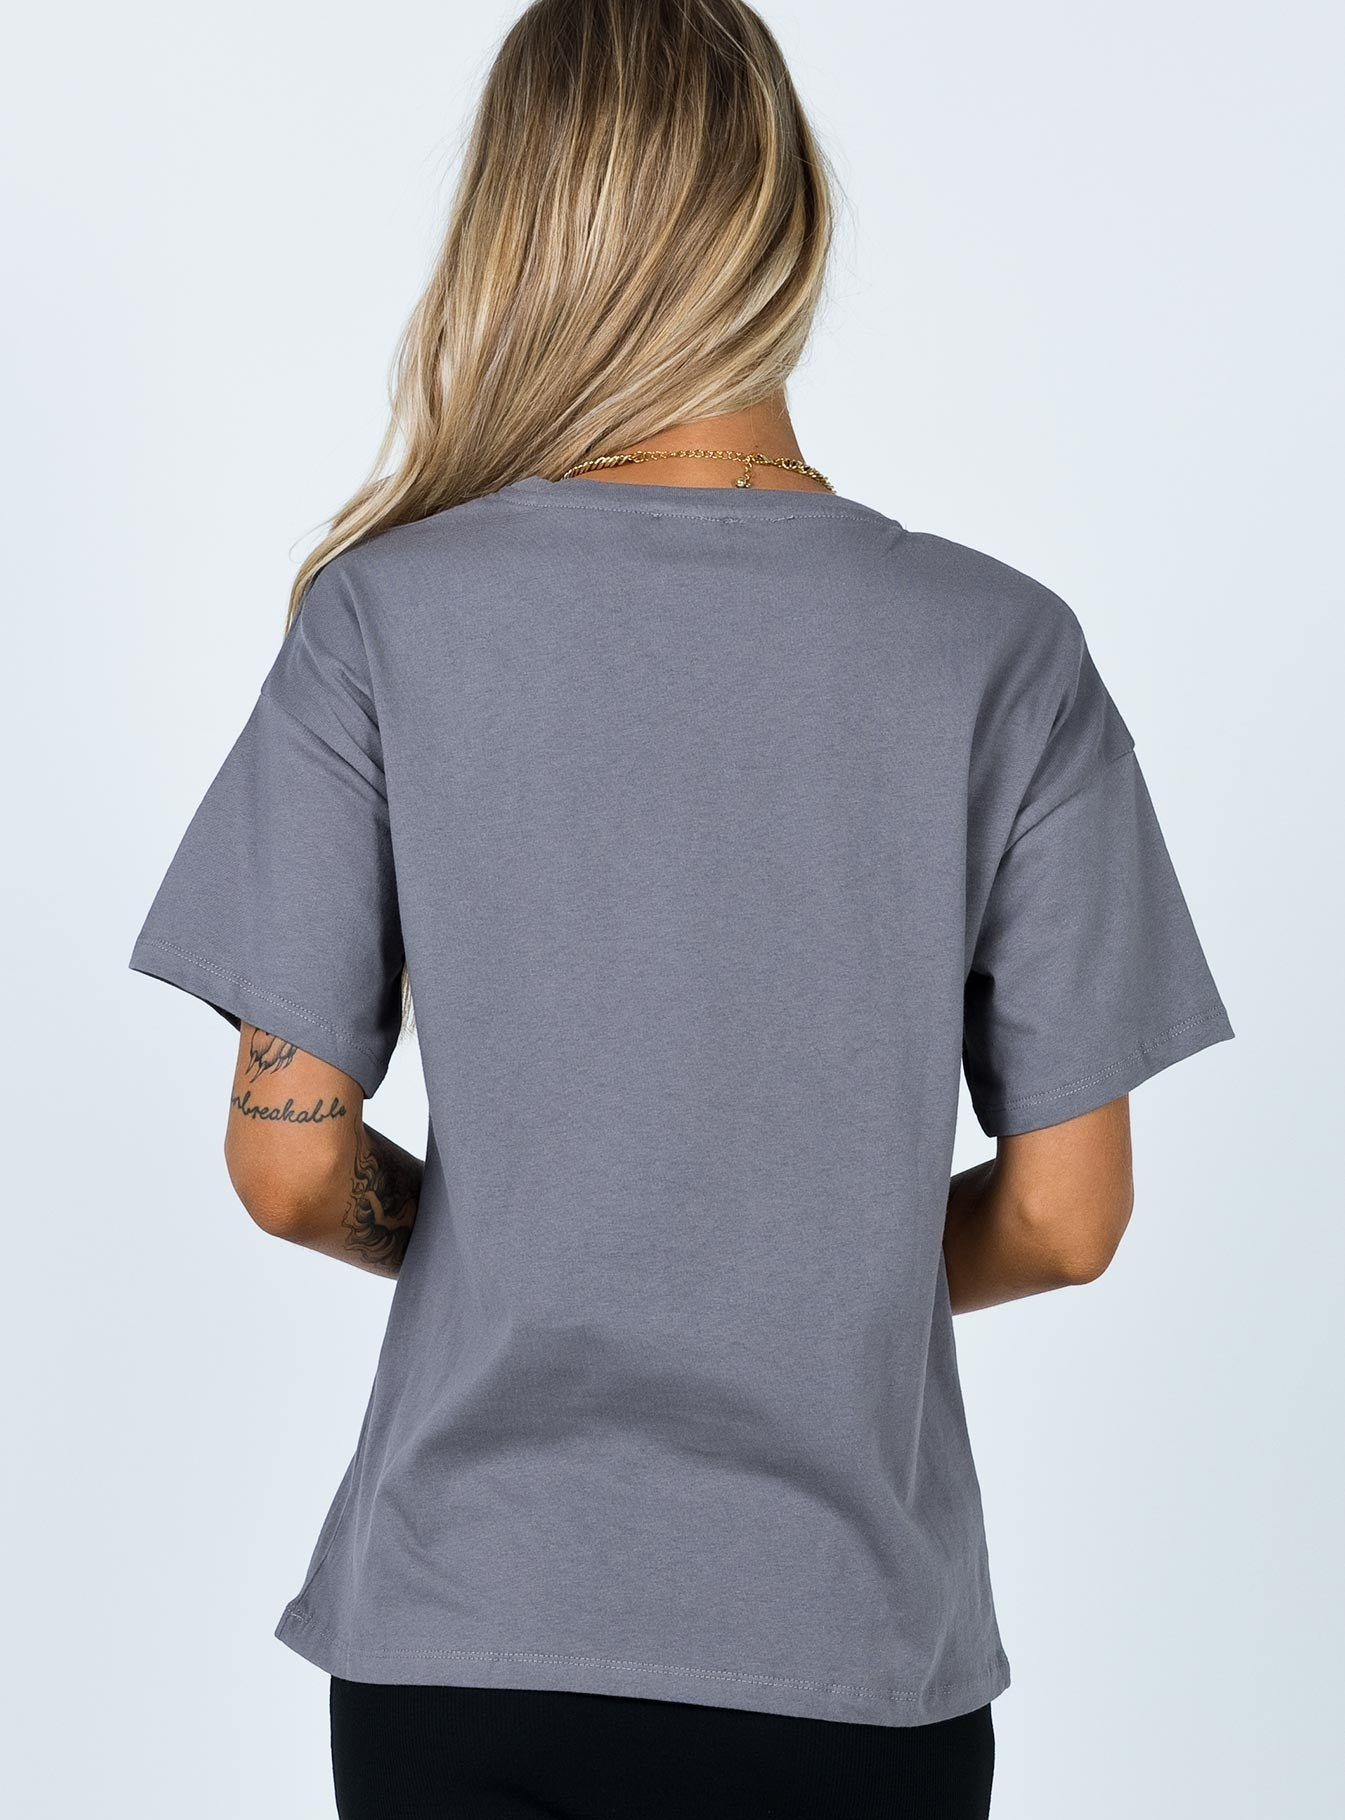 Like the Wind Graphic Tee Grey